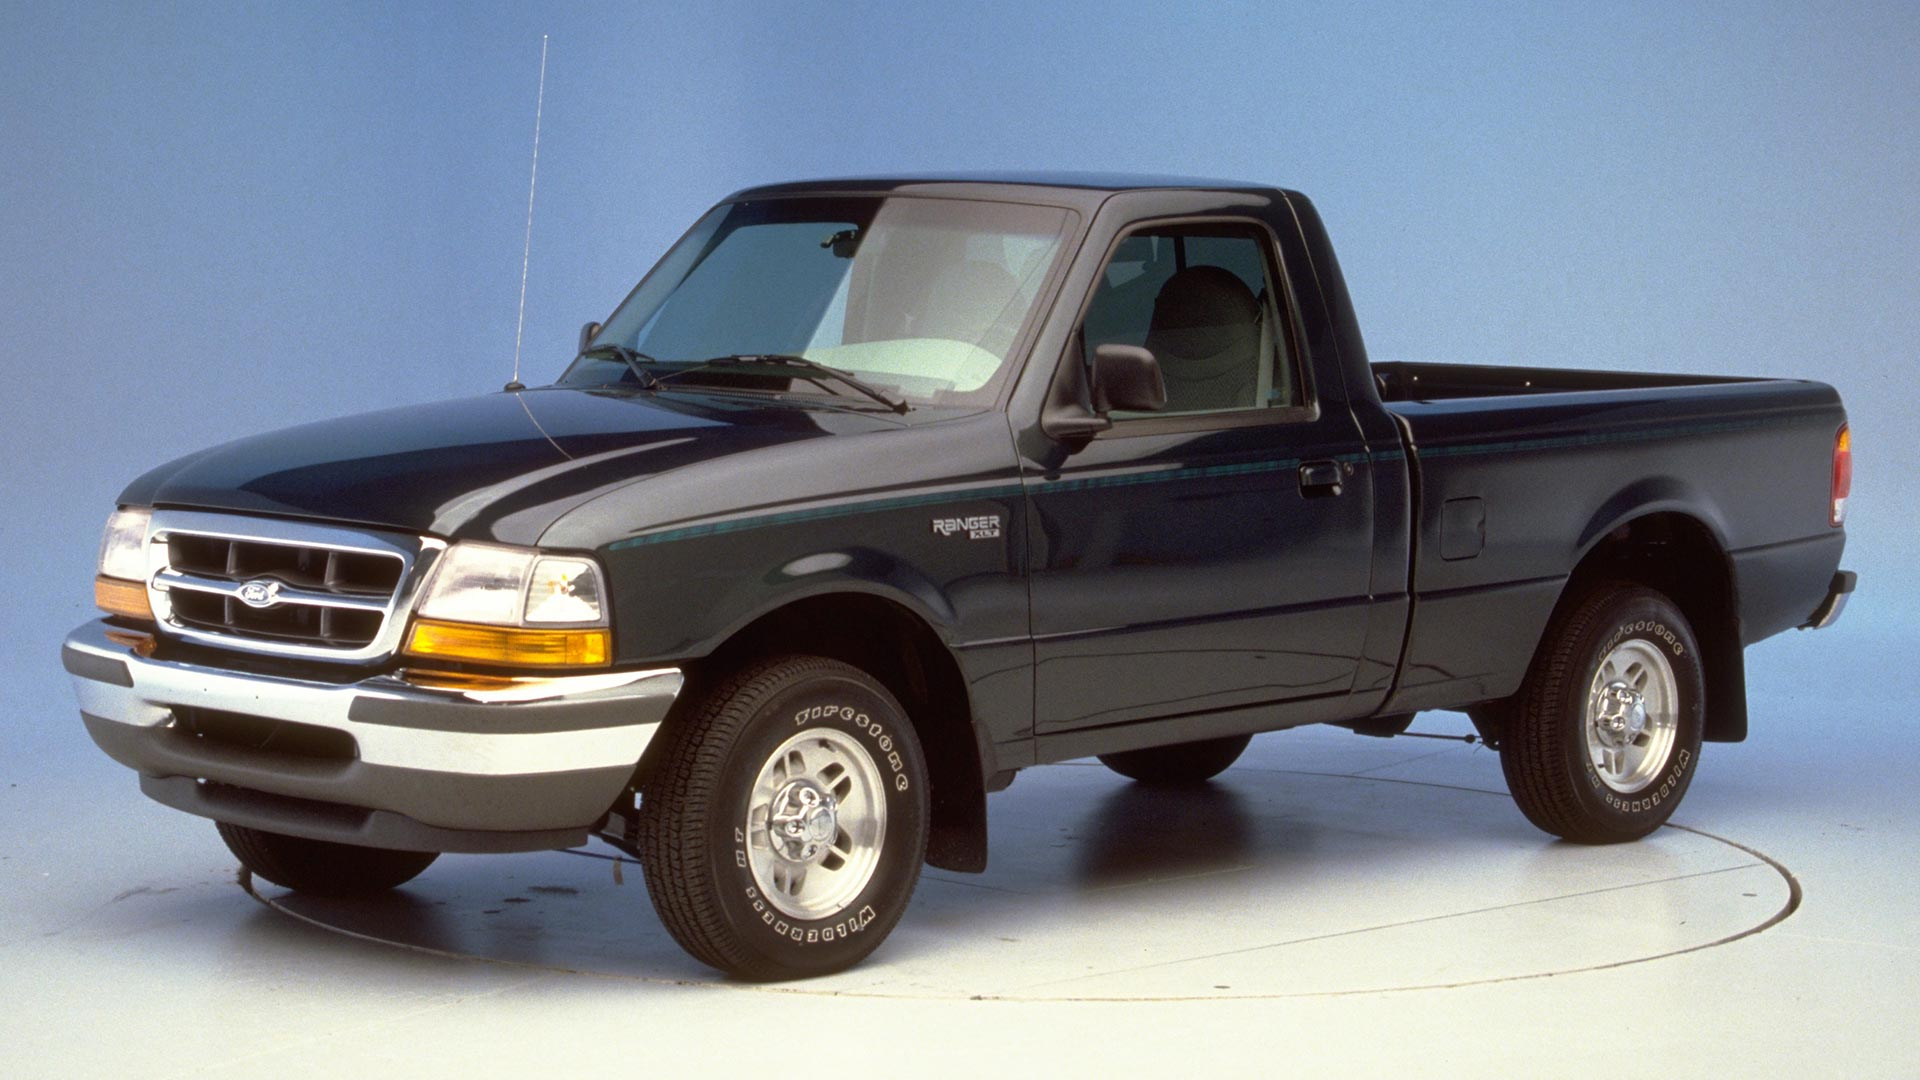 2004 Ford Ranger Regular cab pickup